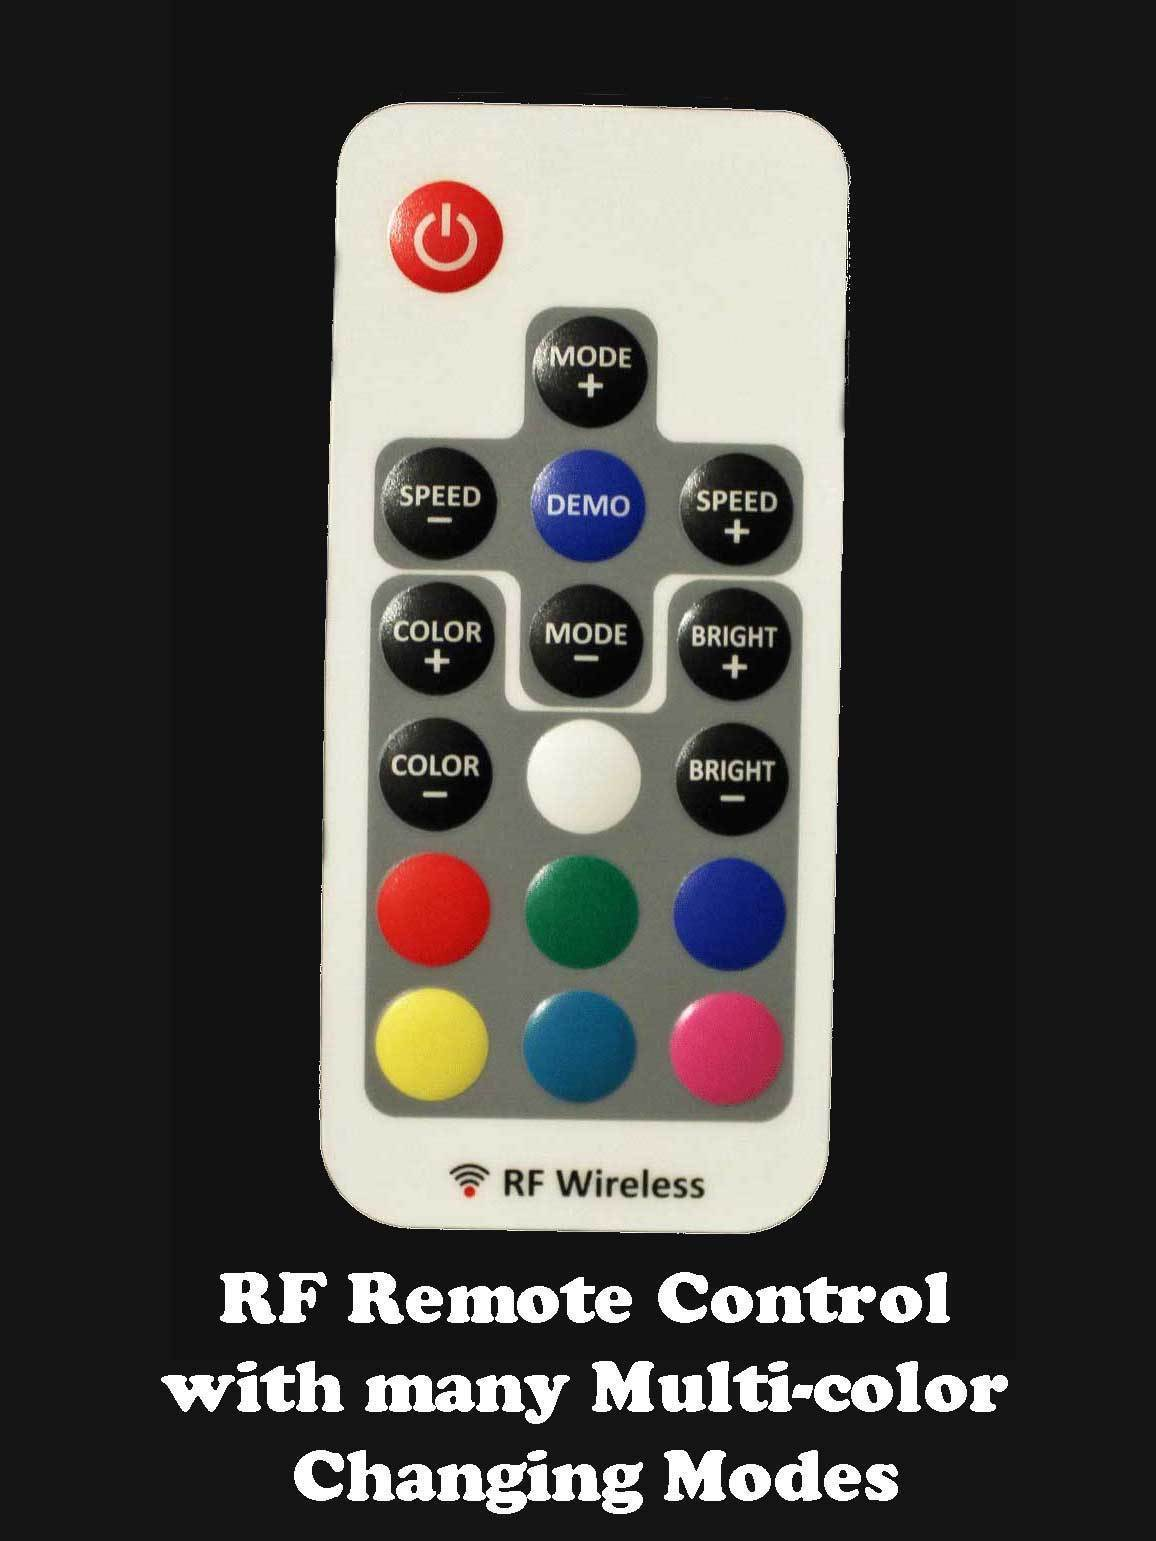 Personalized Halloween Witch Sign - Multi-color changing remote control